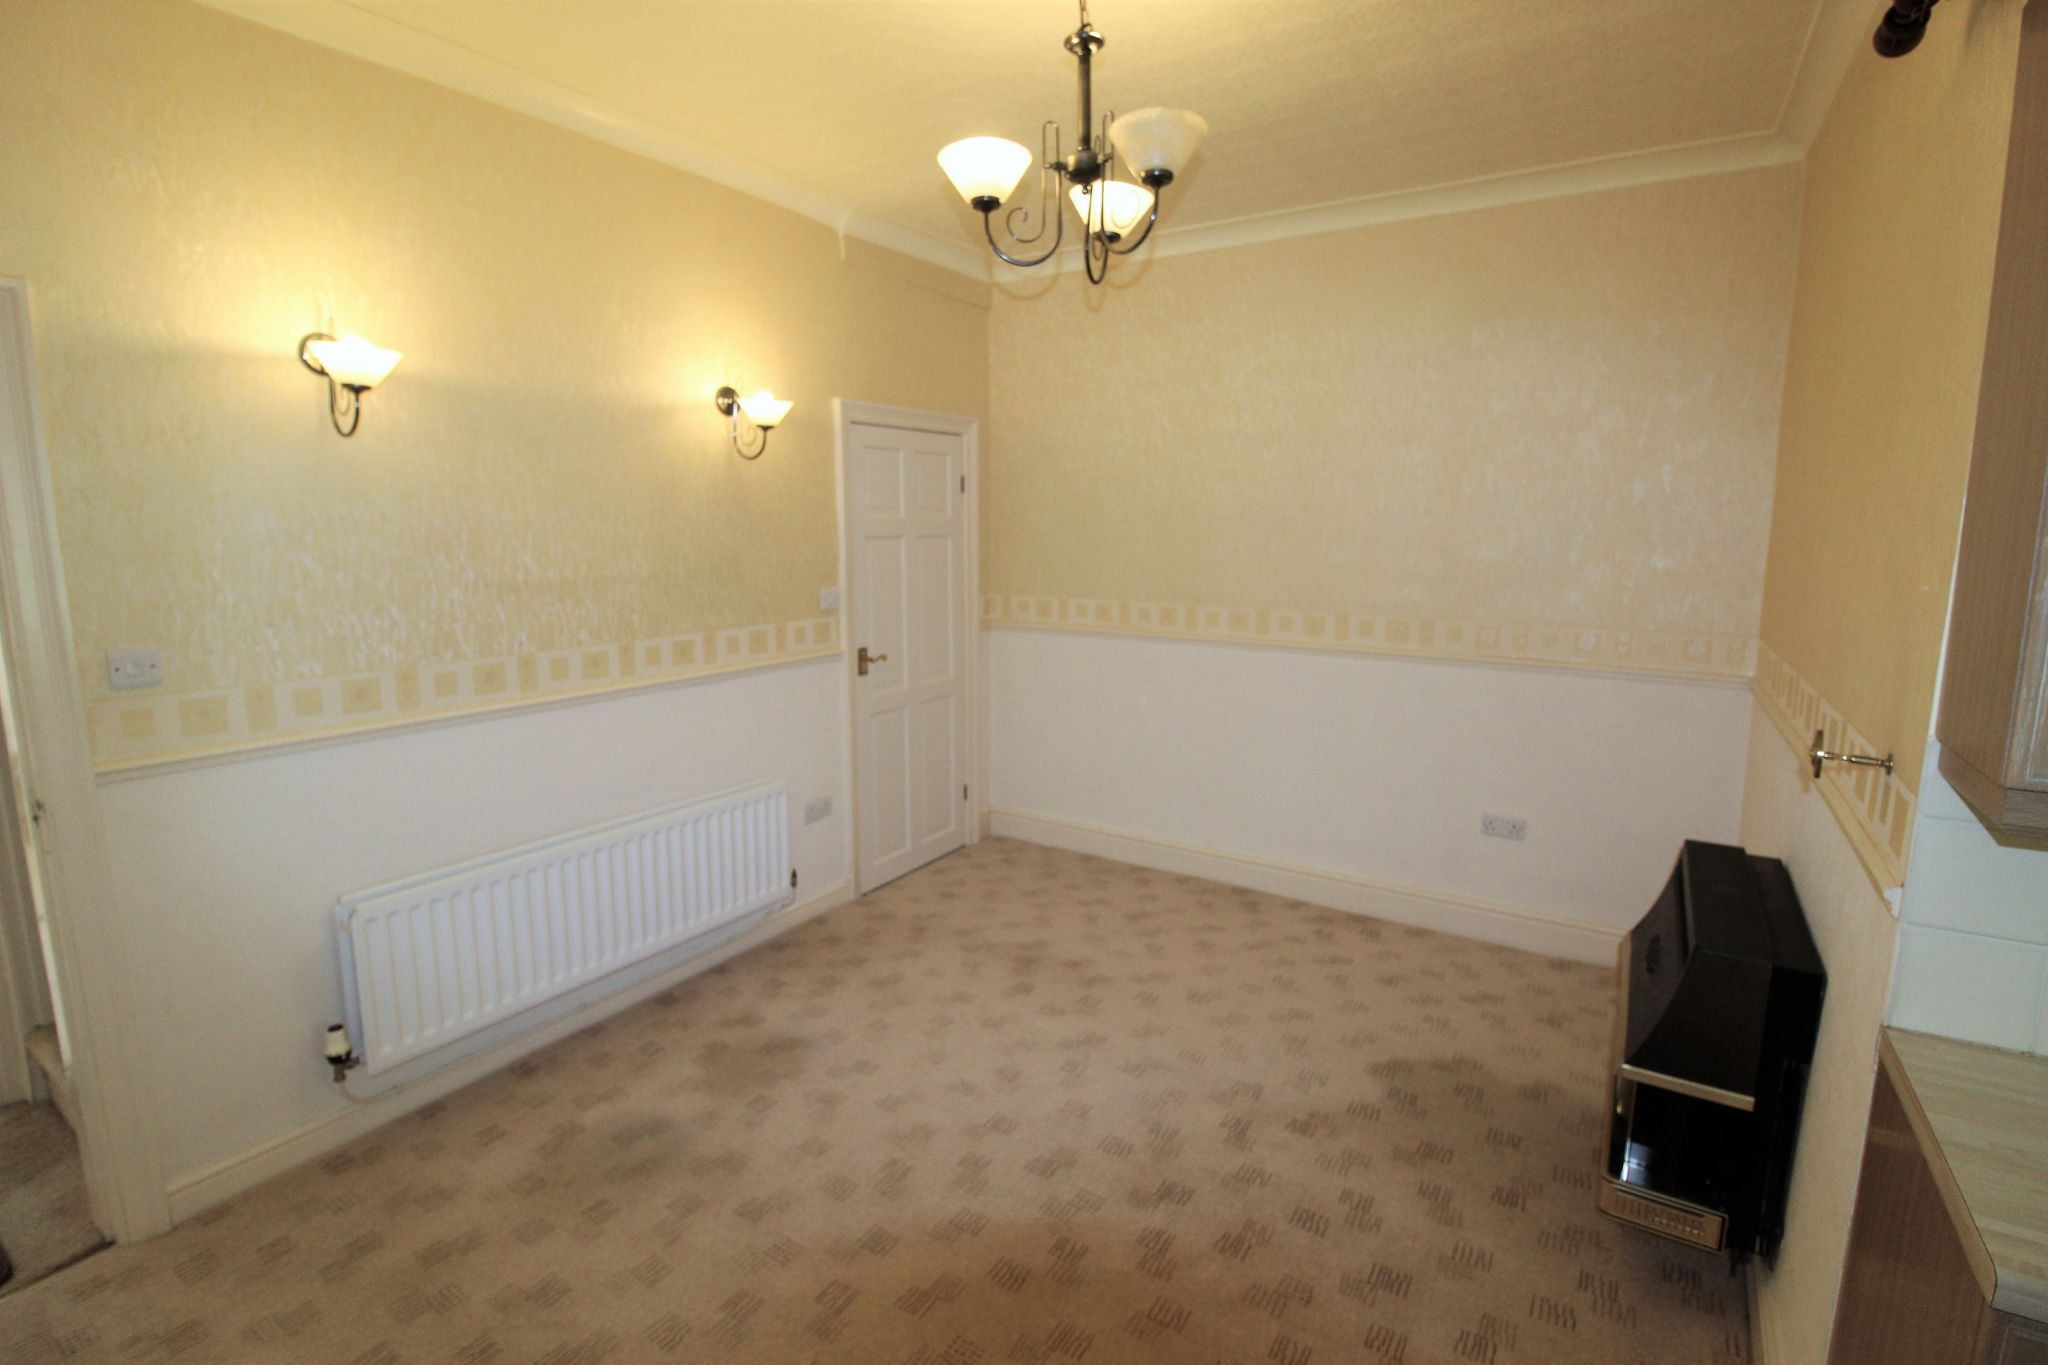 2 bedroom mid terraced house SSTC in Brighouse - Photograph 18